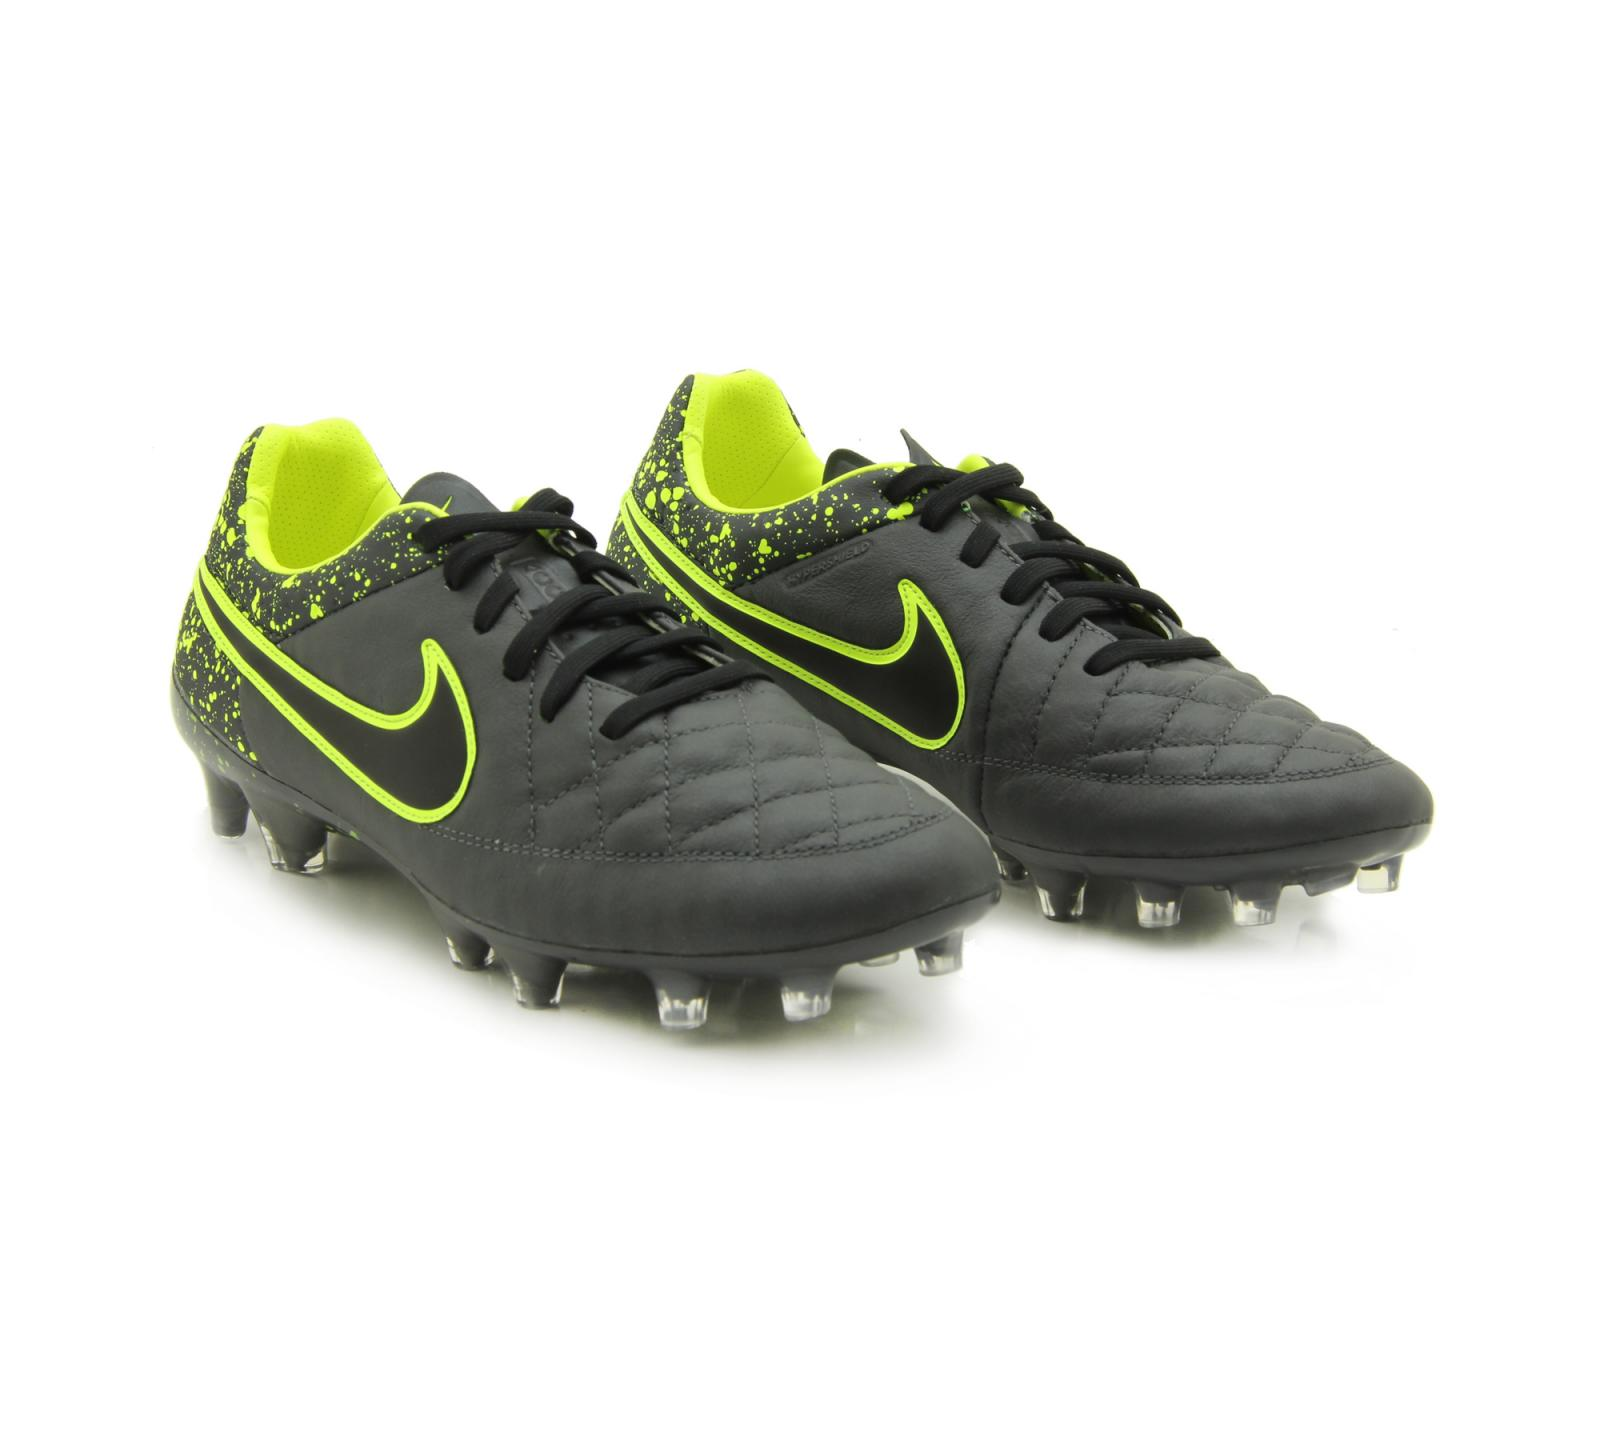 Nike Tiempo Legend 5 FG (631518-006) Soccer Football ... - photo#29